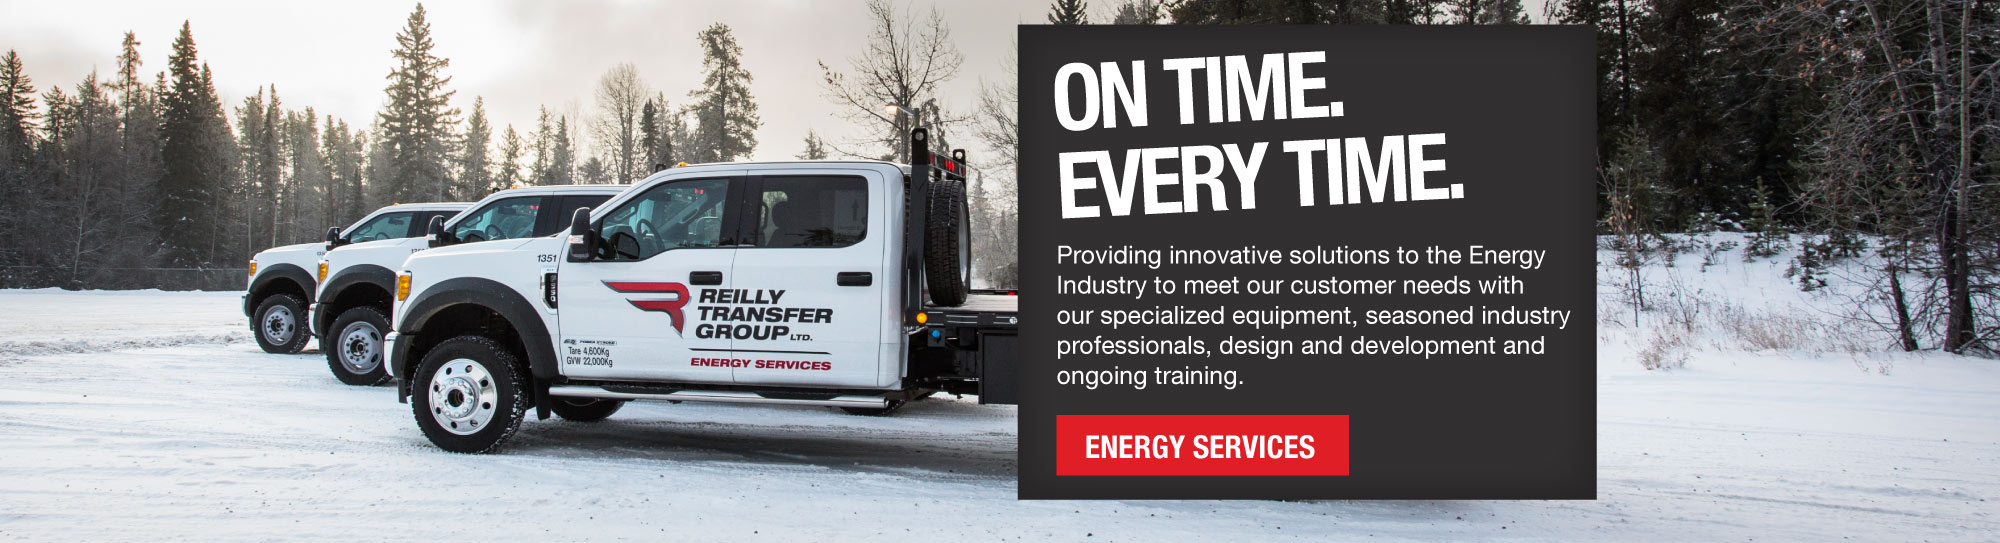 Energy Services - Oilfield Hauling, Camp and Crew Transportation Services Grande Prairie